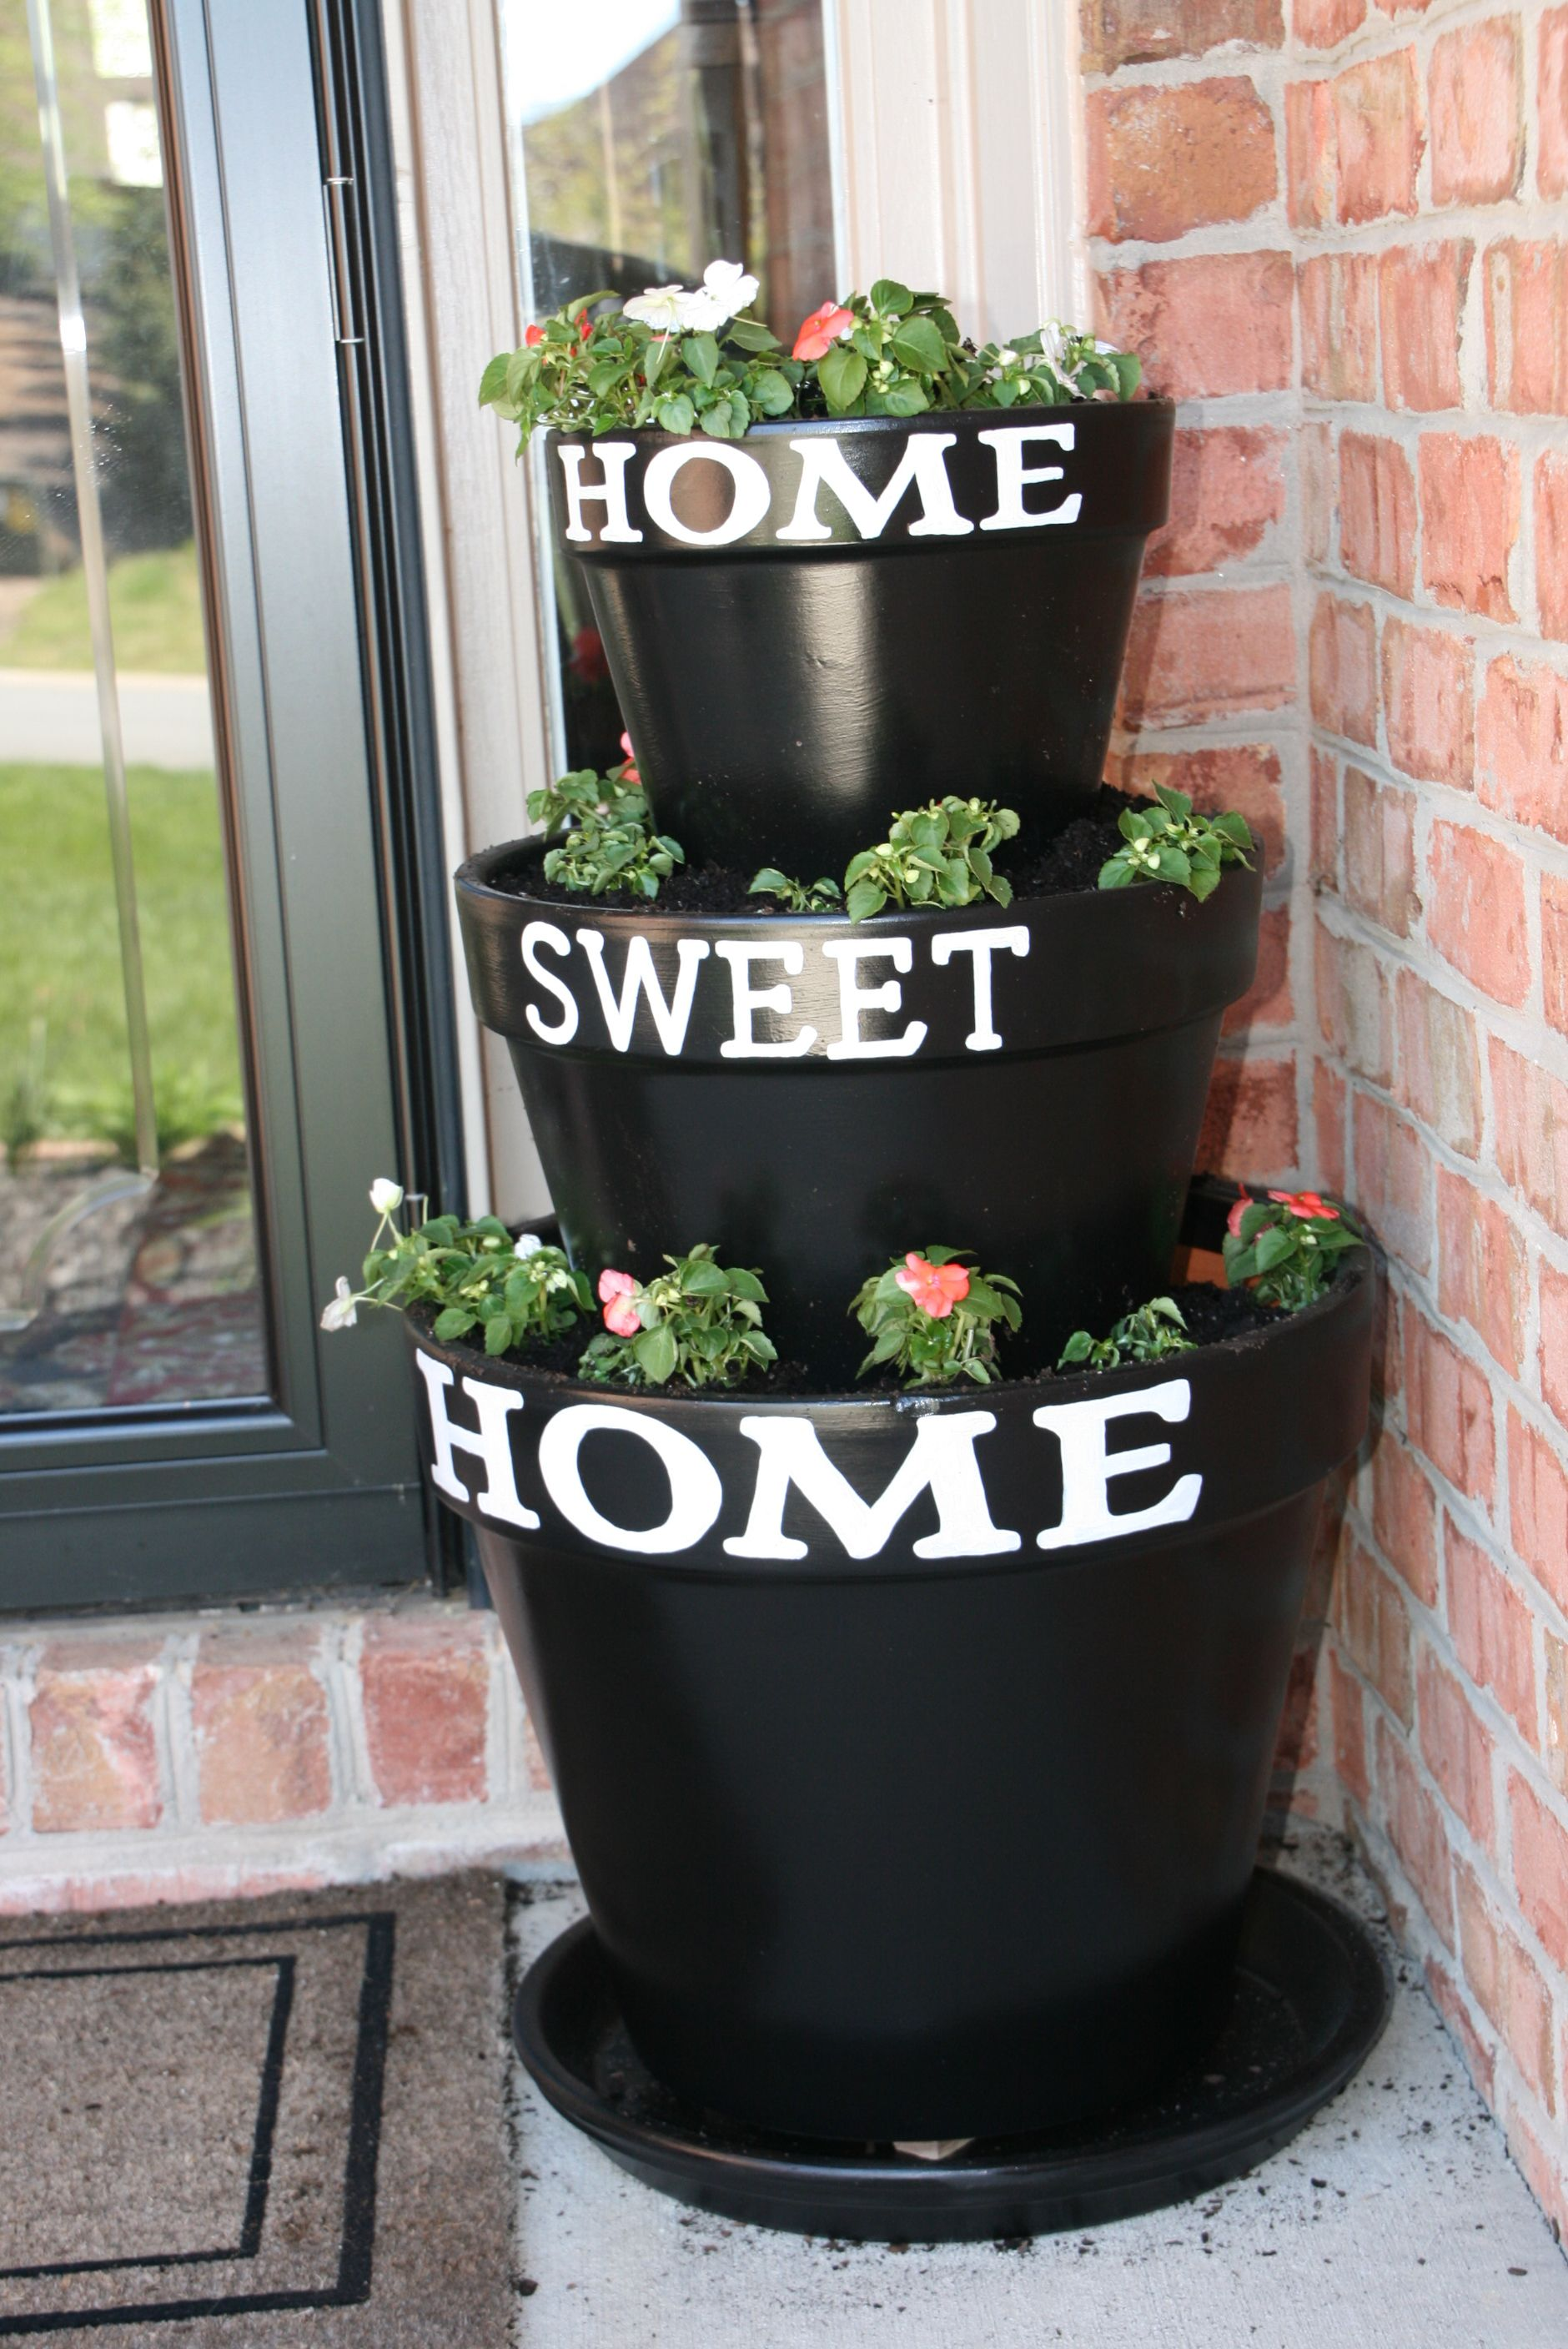 These Are My Version Of The Cool Pots I